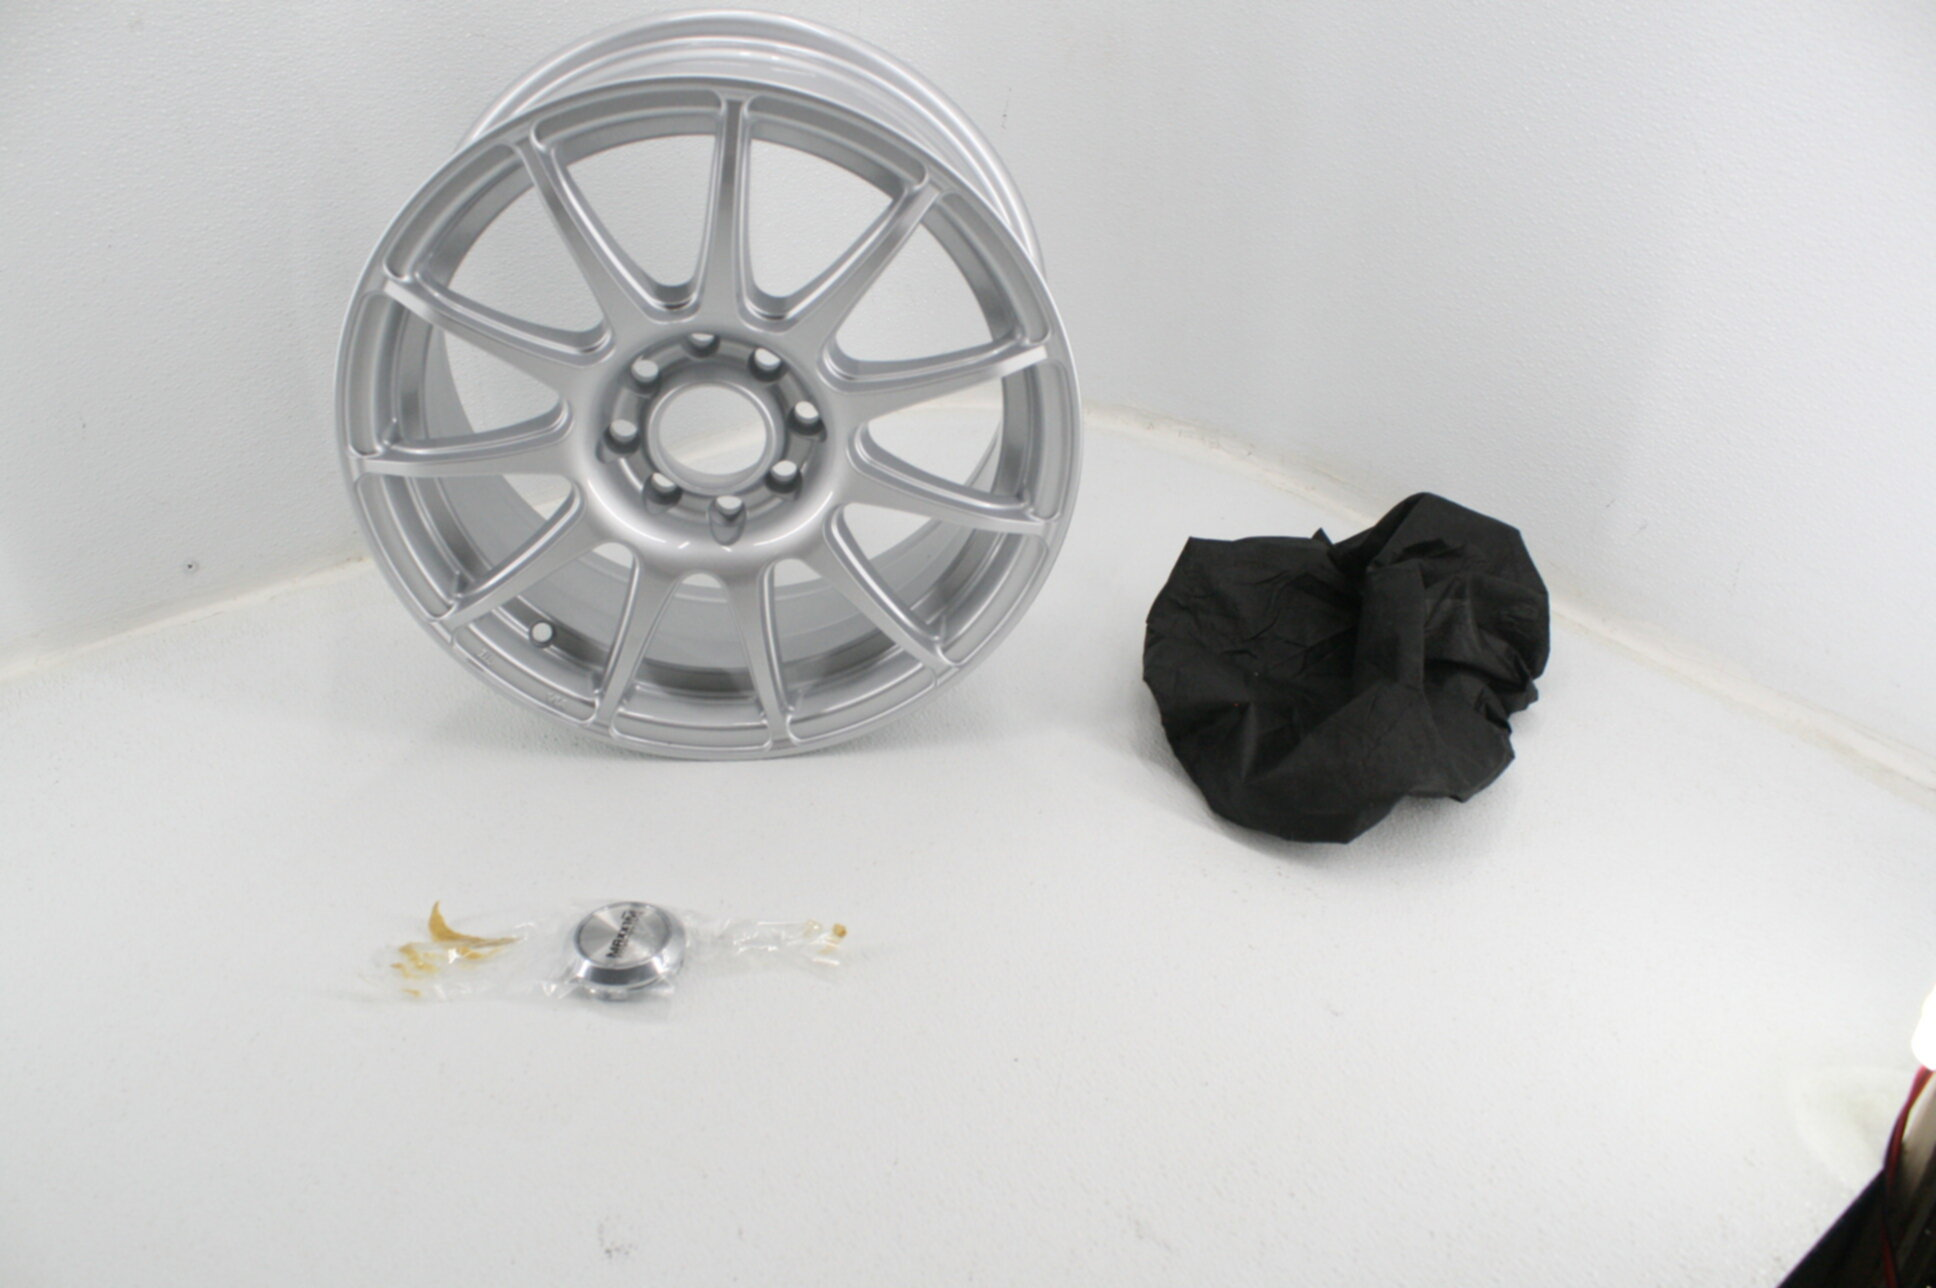 15 x 6.5 inches //4 x 100 mm, 38 mm Offset Maxxim WINNER Silver Wheel with Painted Finish